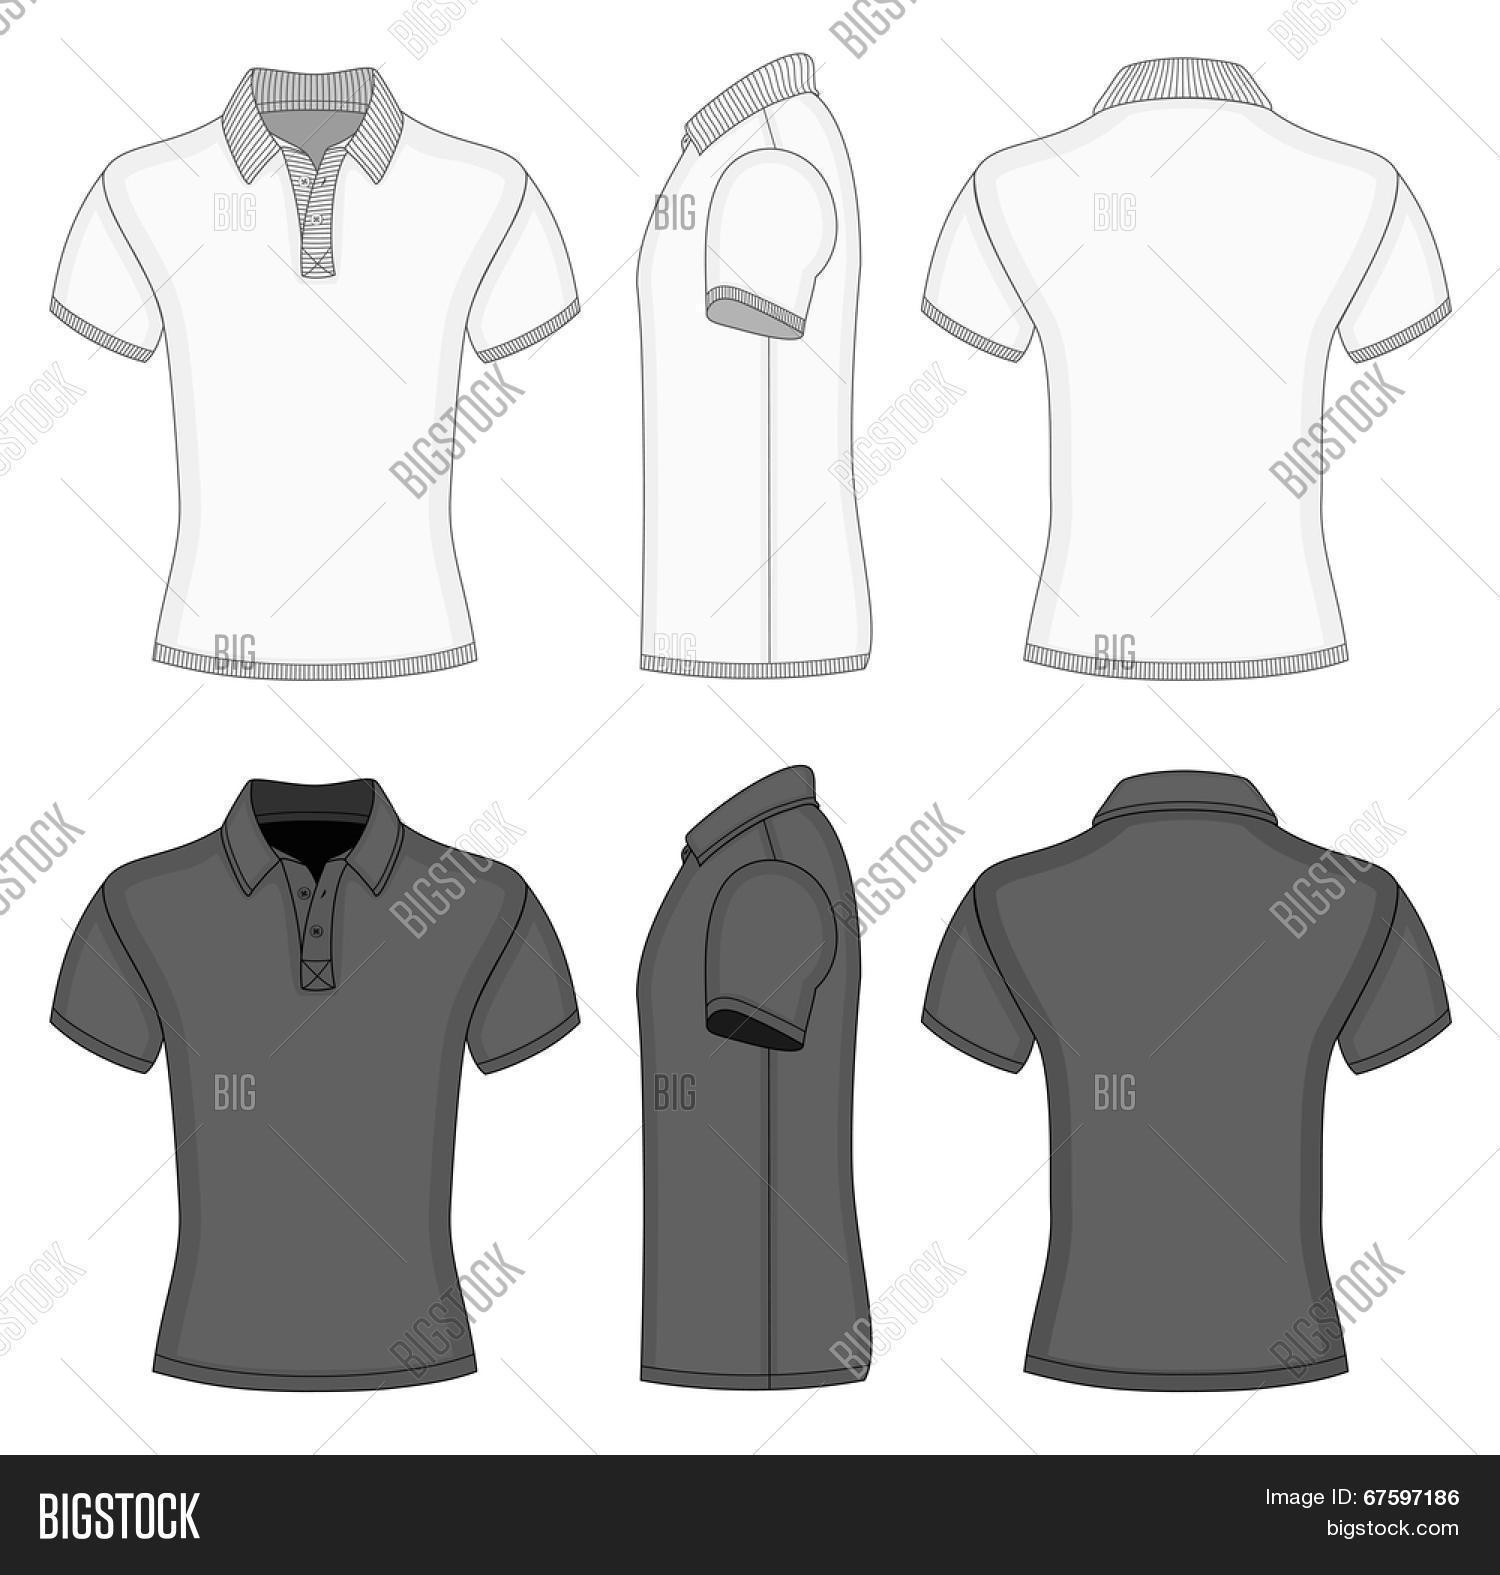 Black t shirt vector front and back - Men S White And Black Short Sleeve Polo Shirt And T Shirt Design Templates Front